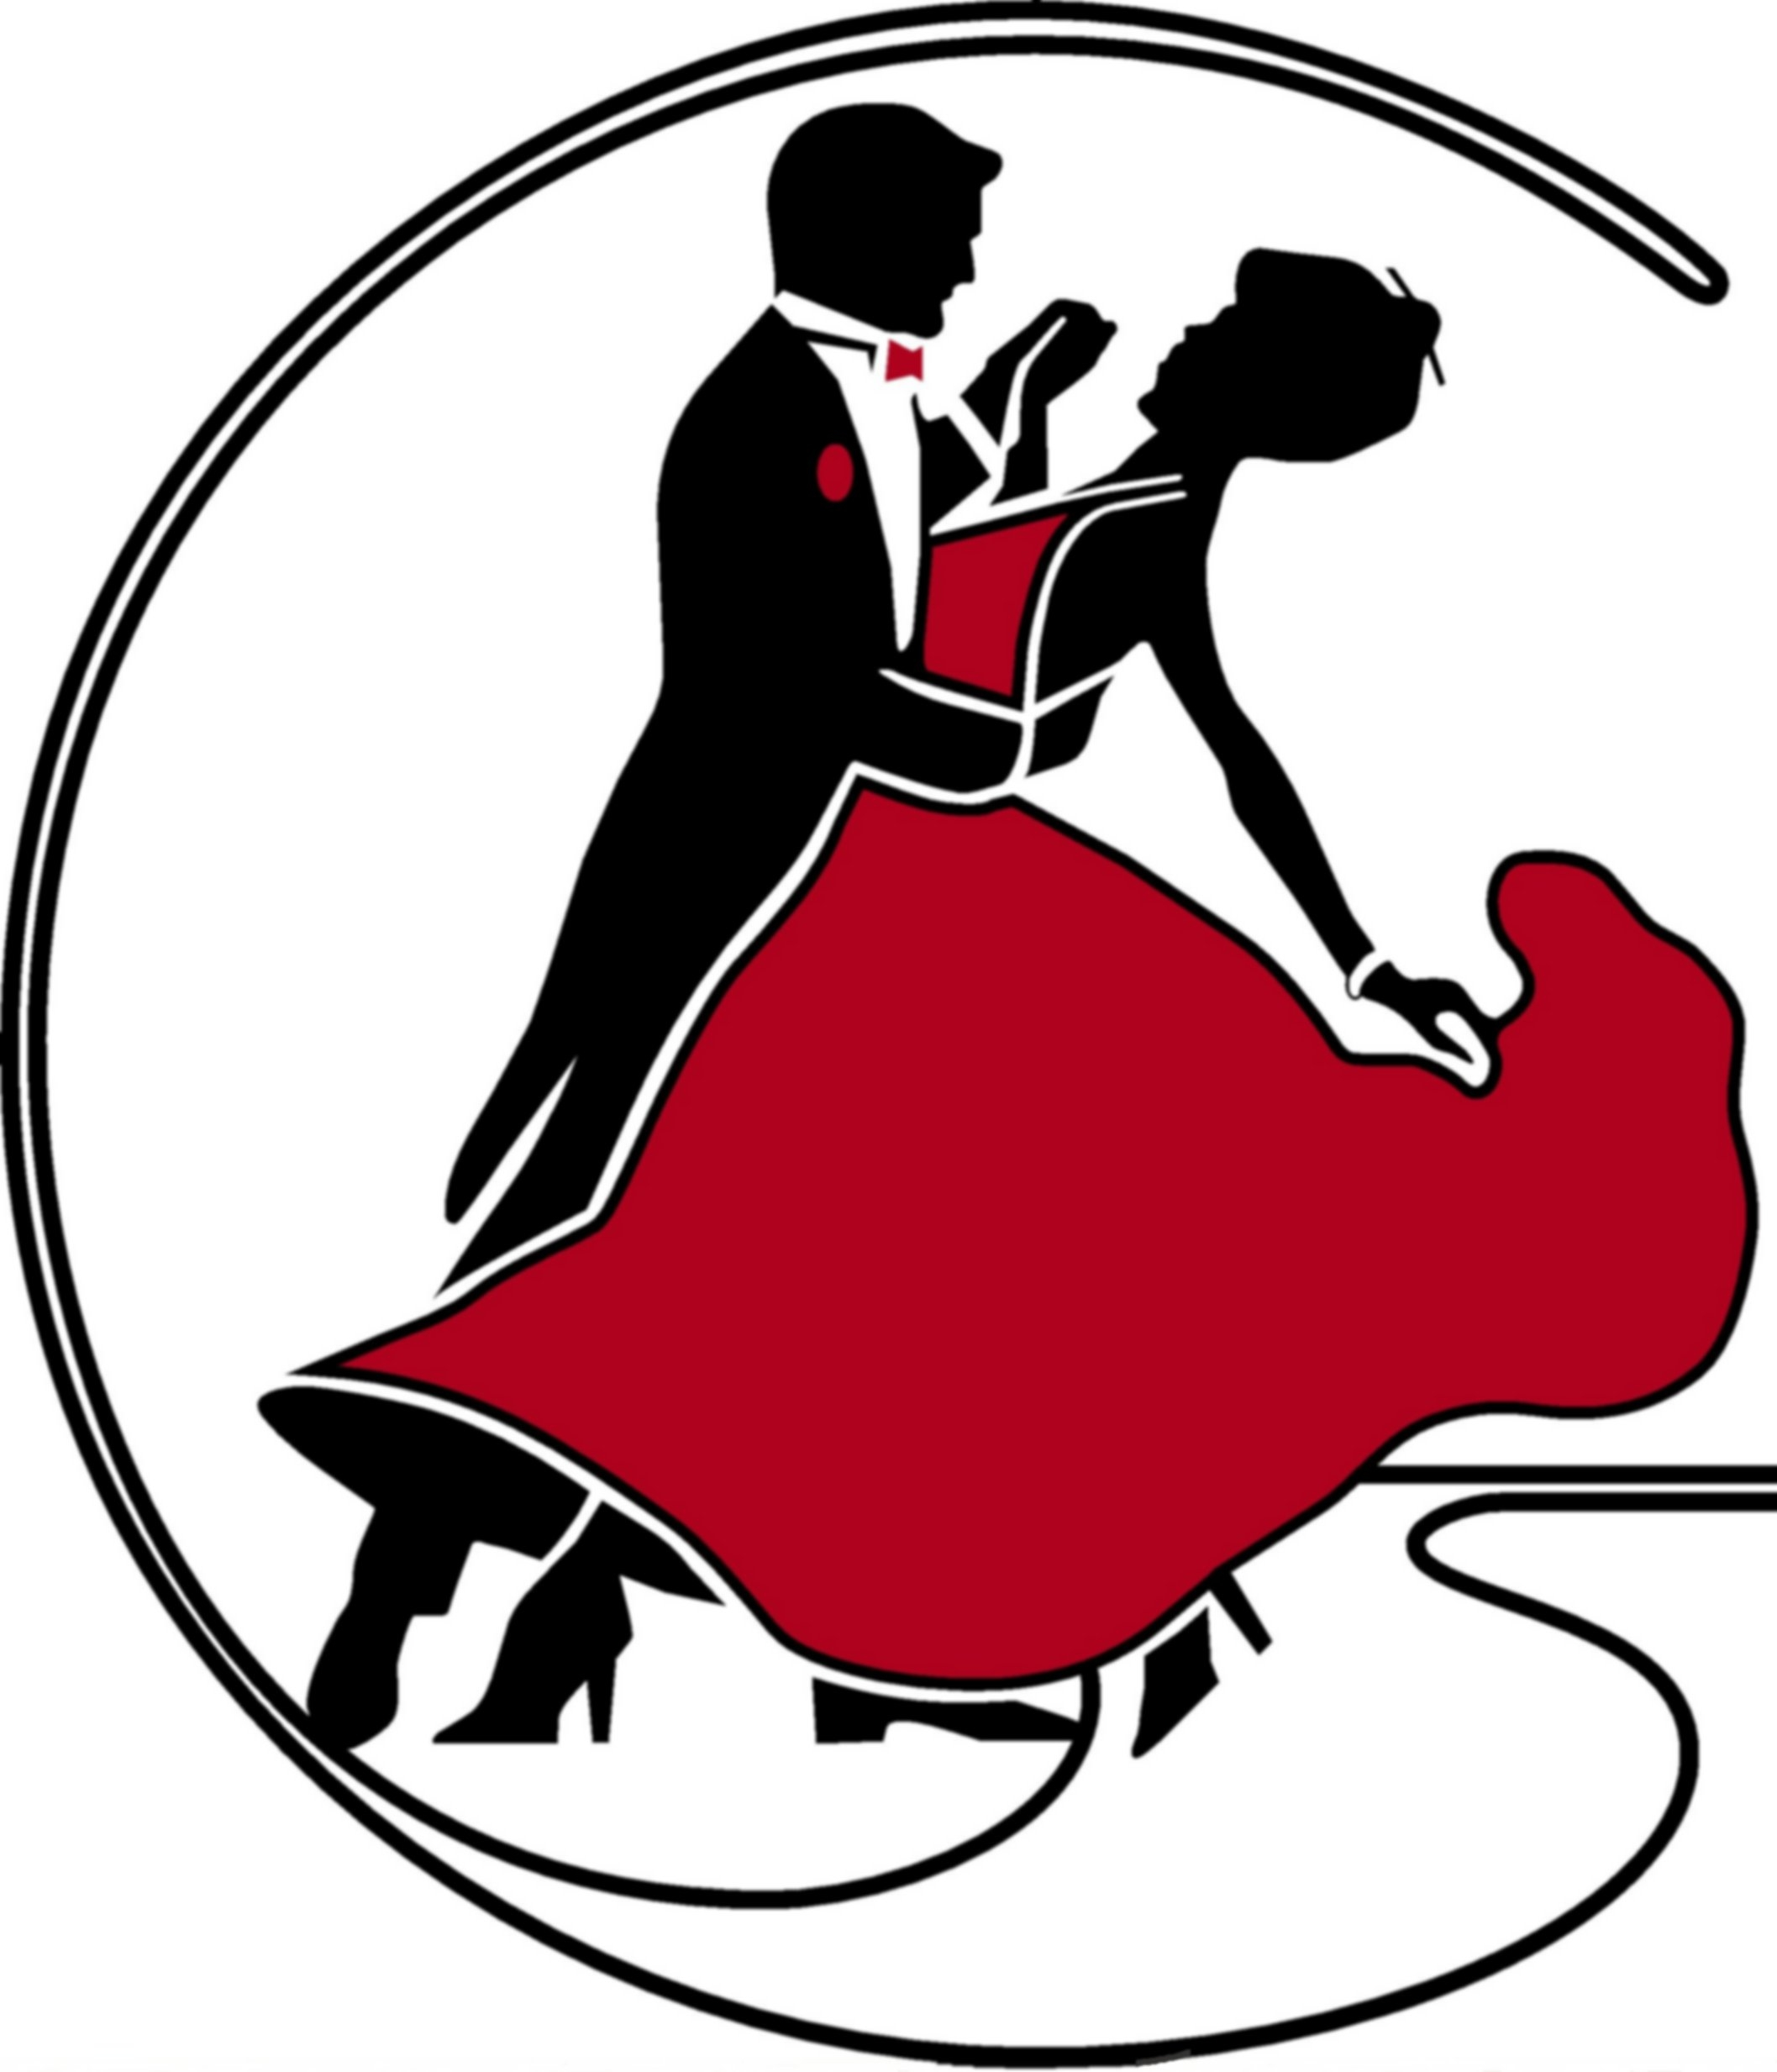 Silhouette dancers at getdrawings. Dancer clipart ballroom dance graphic library download